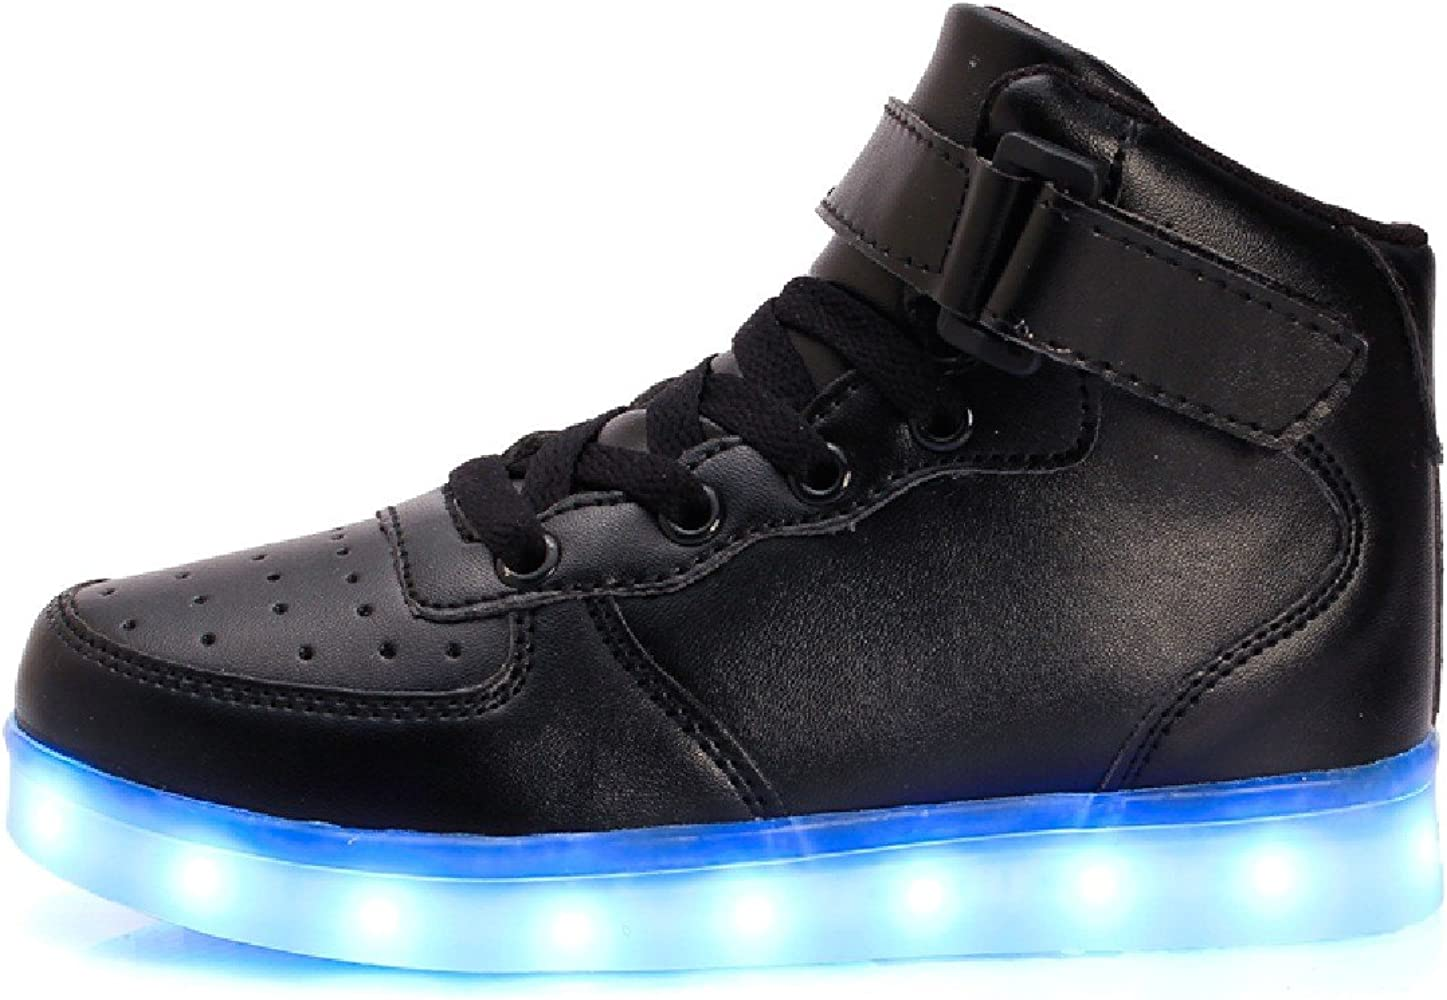 Fashion Shoes with Light for Kids and Toddlers Shoes for Boys Led Light Sport